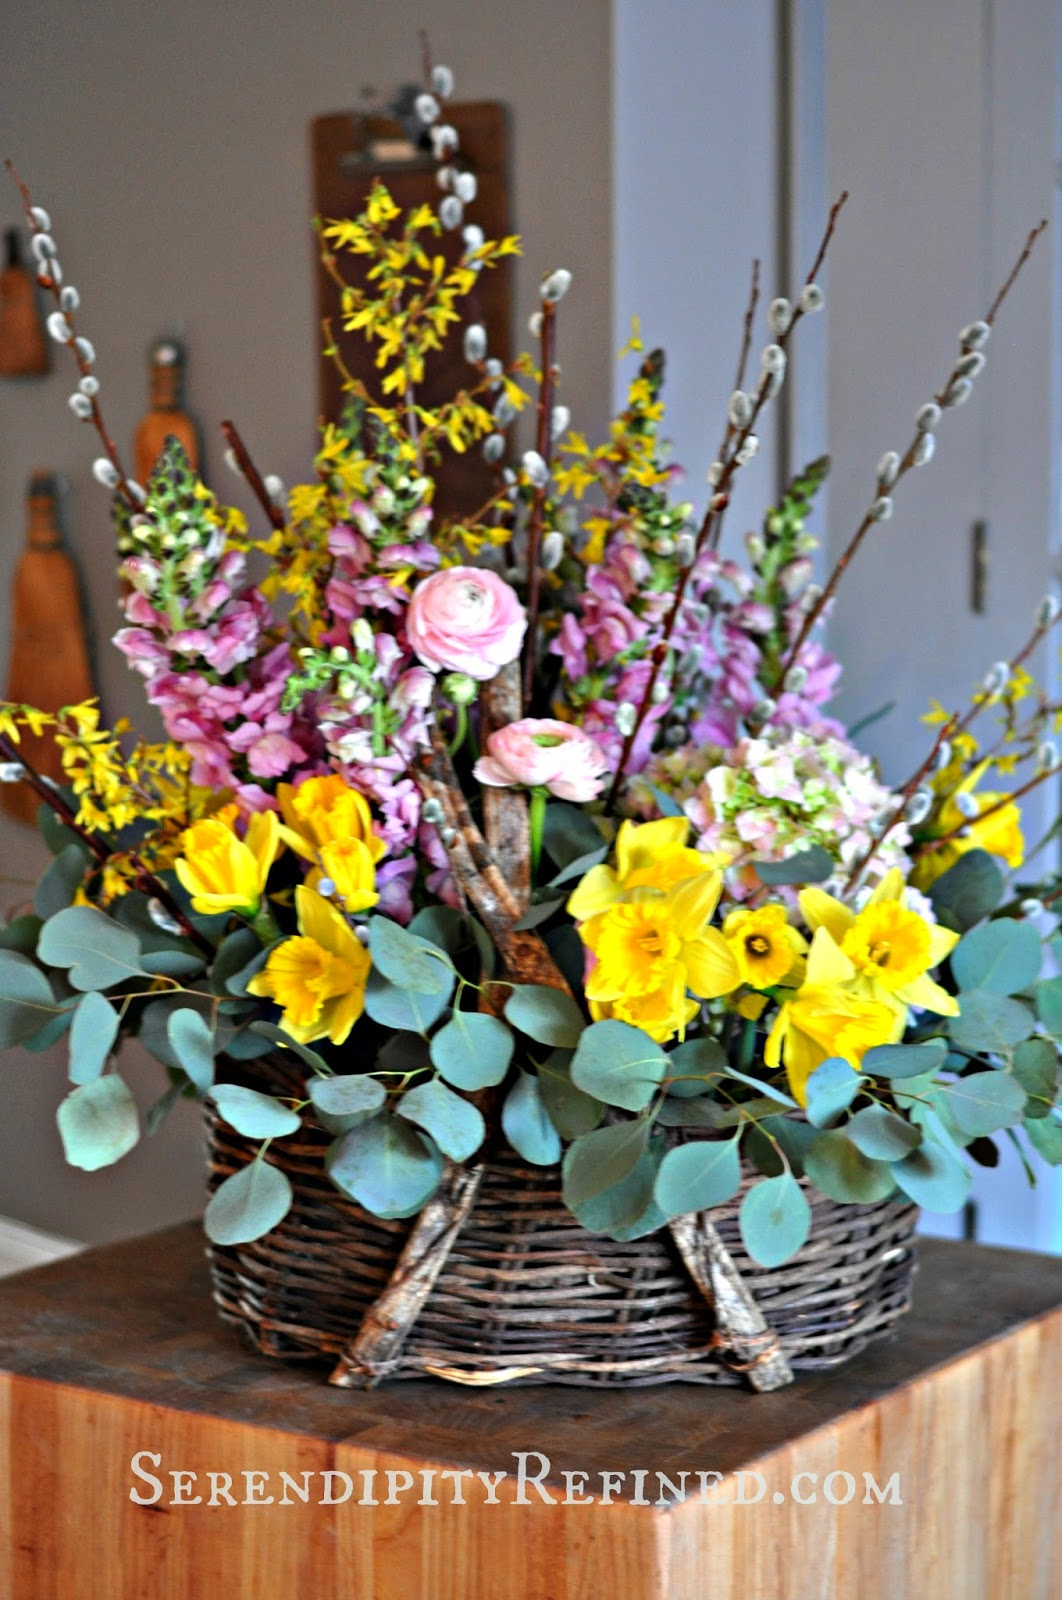 Serendipity refined blog spring flower basket easter table centerpiece - Easter table decorations meals special ...